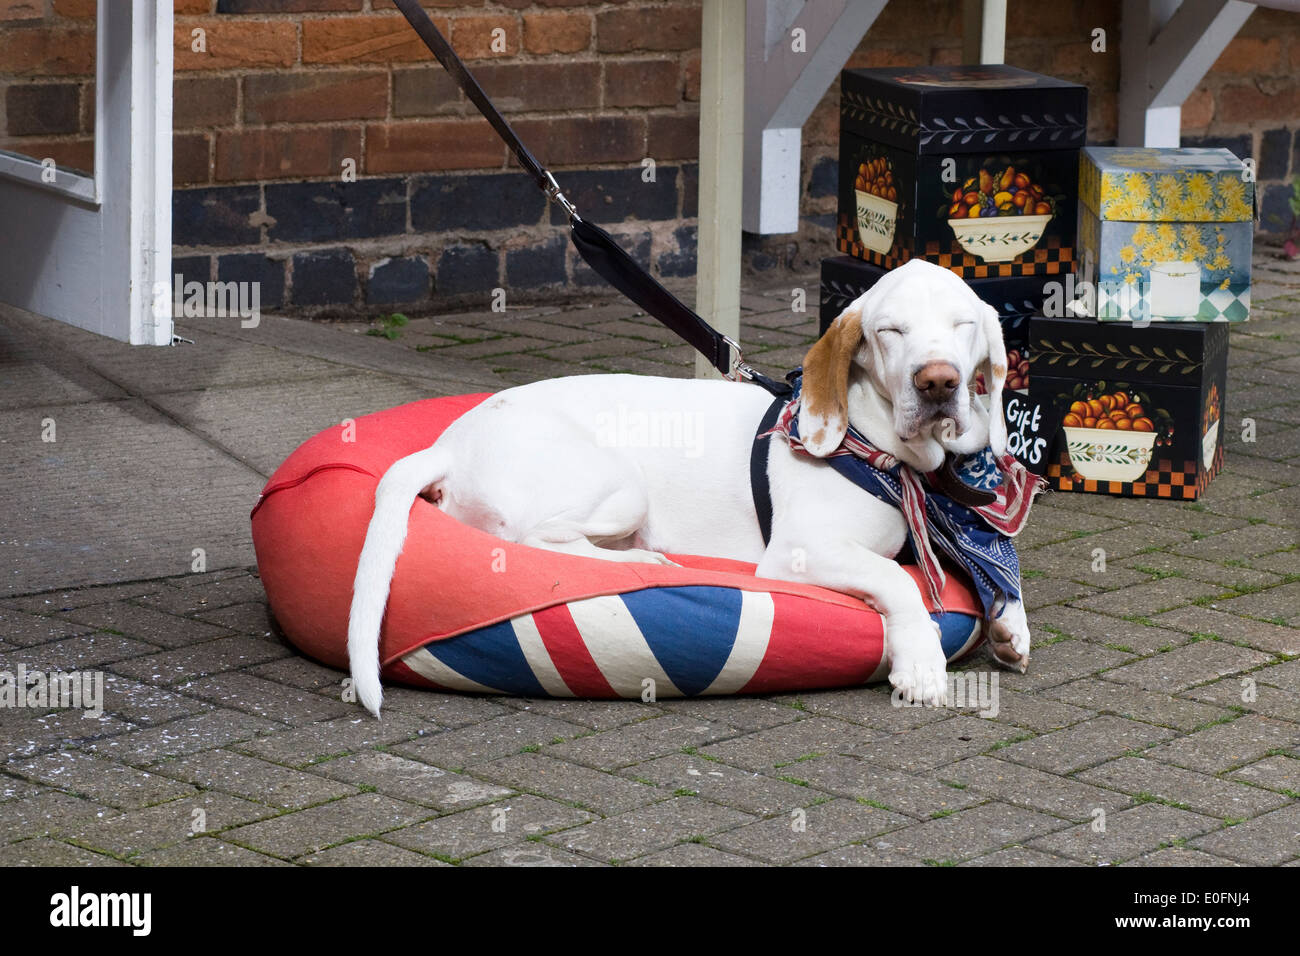 Cross bred hound laying on a Union jack Beanbag with stars and stripes Neckerchief around his neck - Stock Image